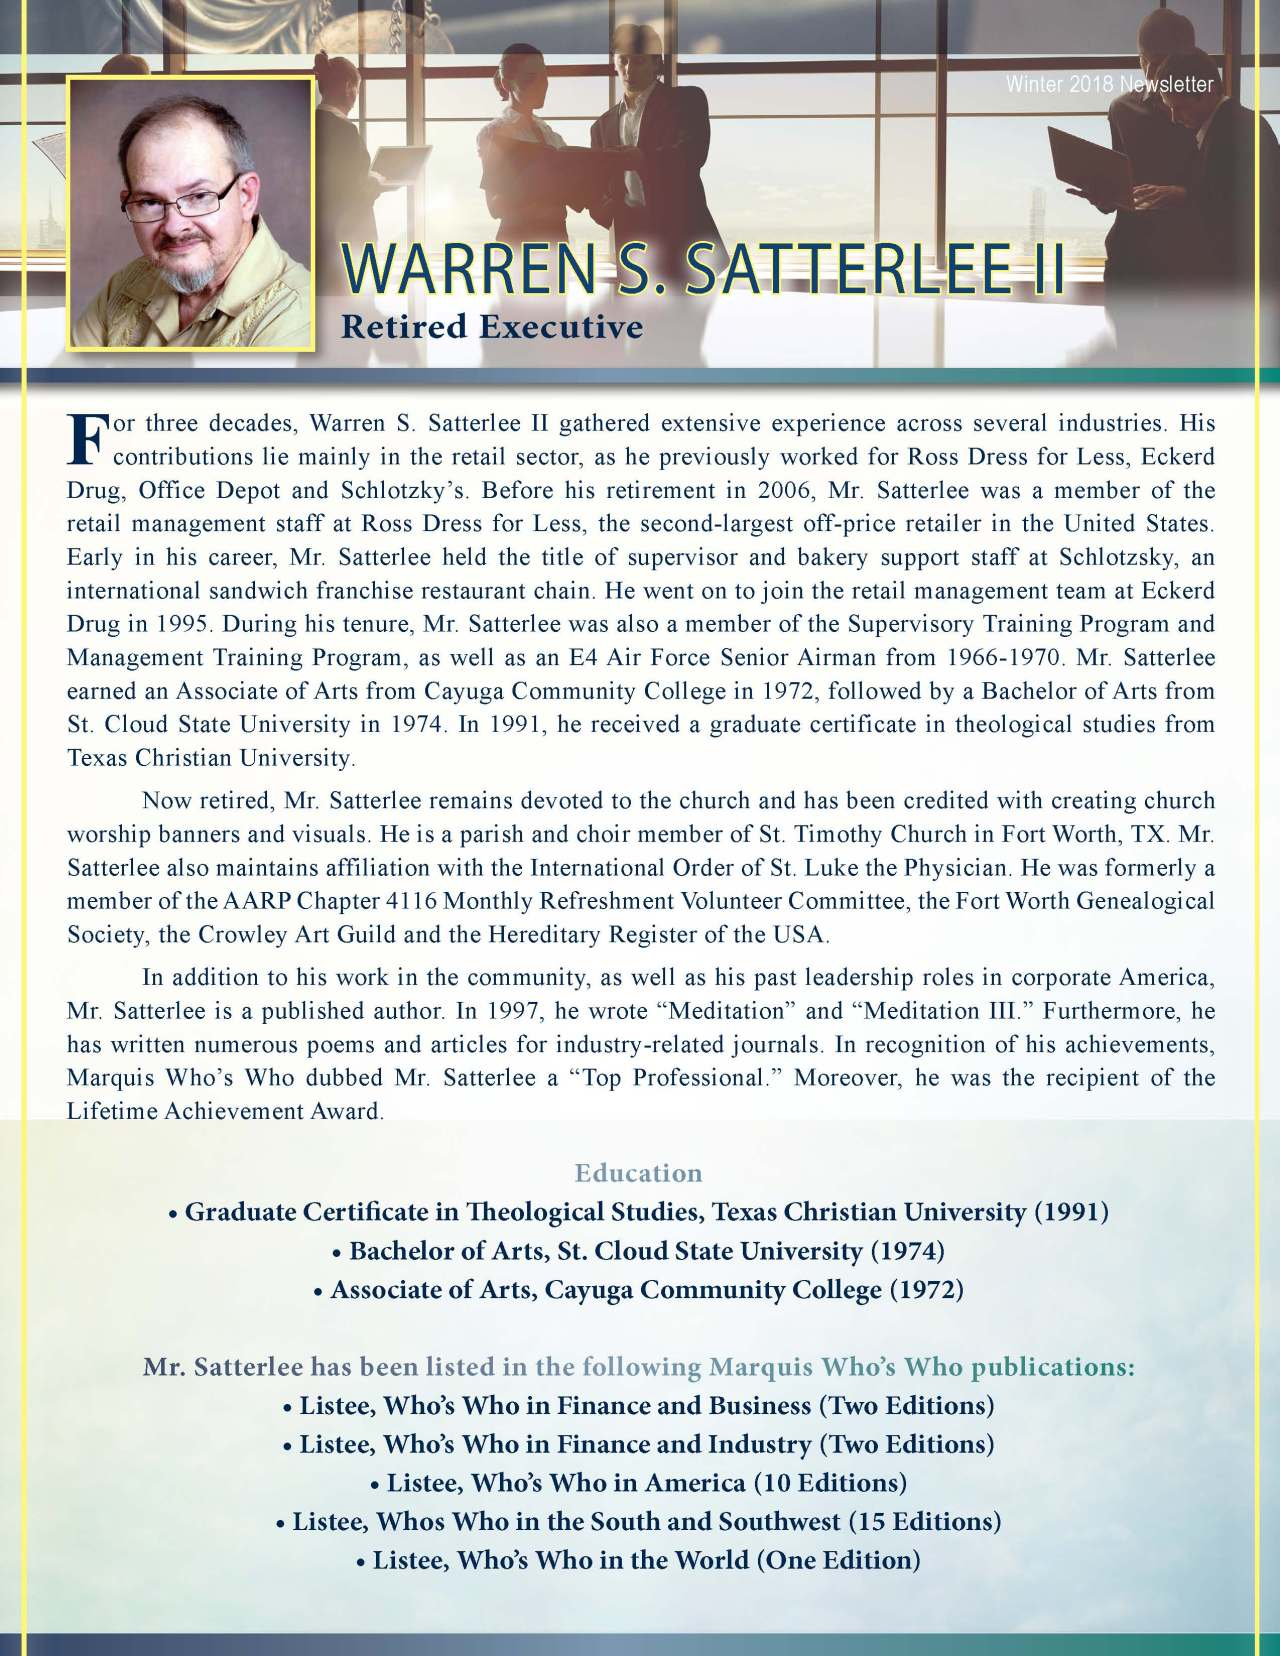 Satterlee, Warren 2188690_27619378 Newsletter REVISED